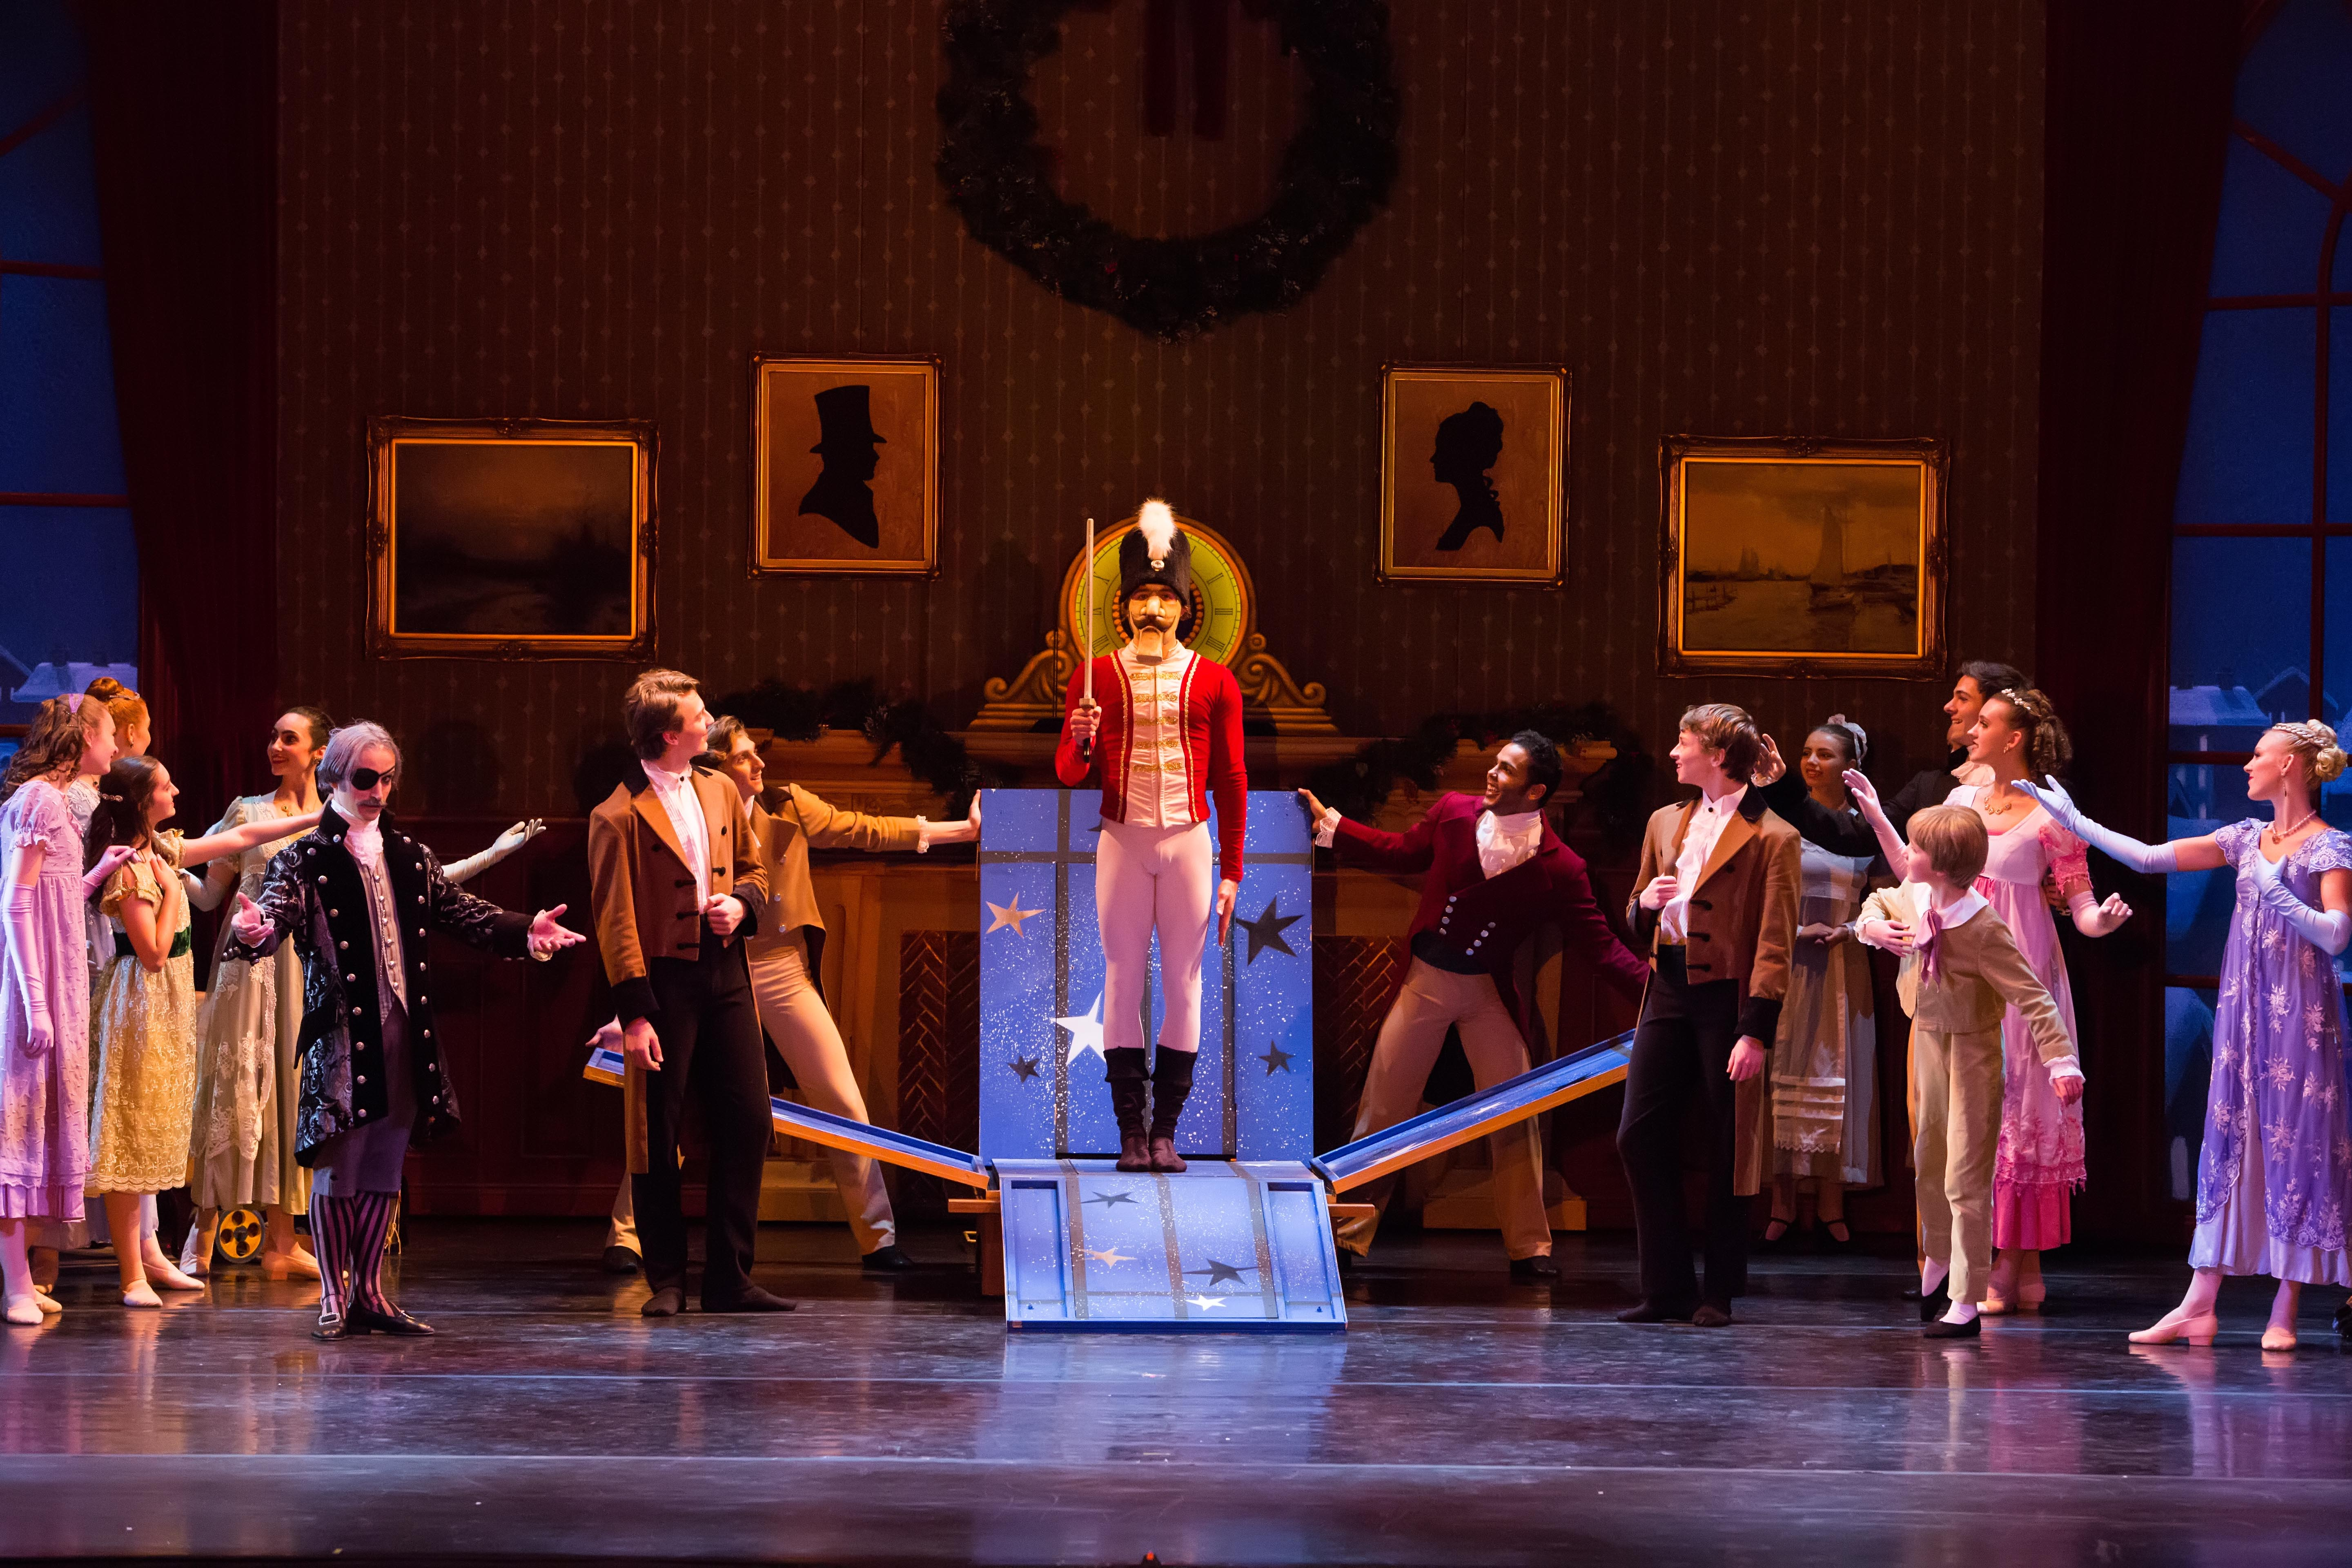 Review: Grand Rapids Ballet gives outstanding 2017 'Nutcracker' performance